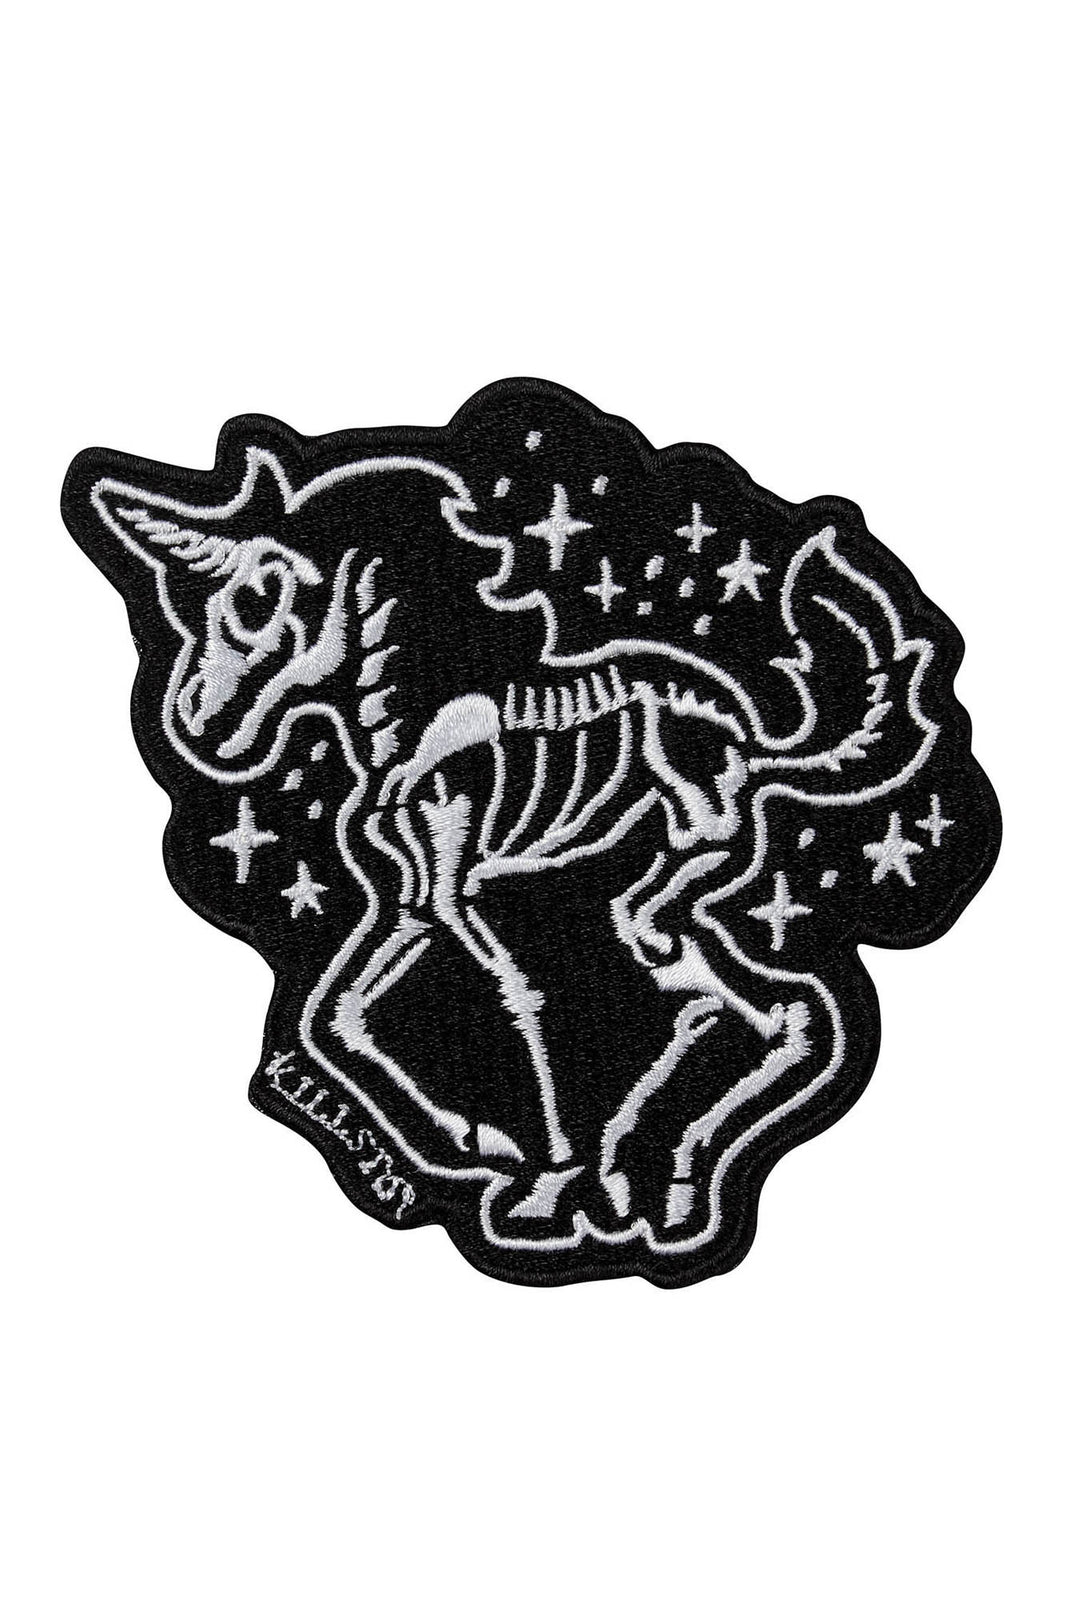 Space Bones Patch [B]